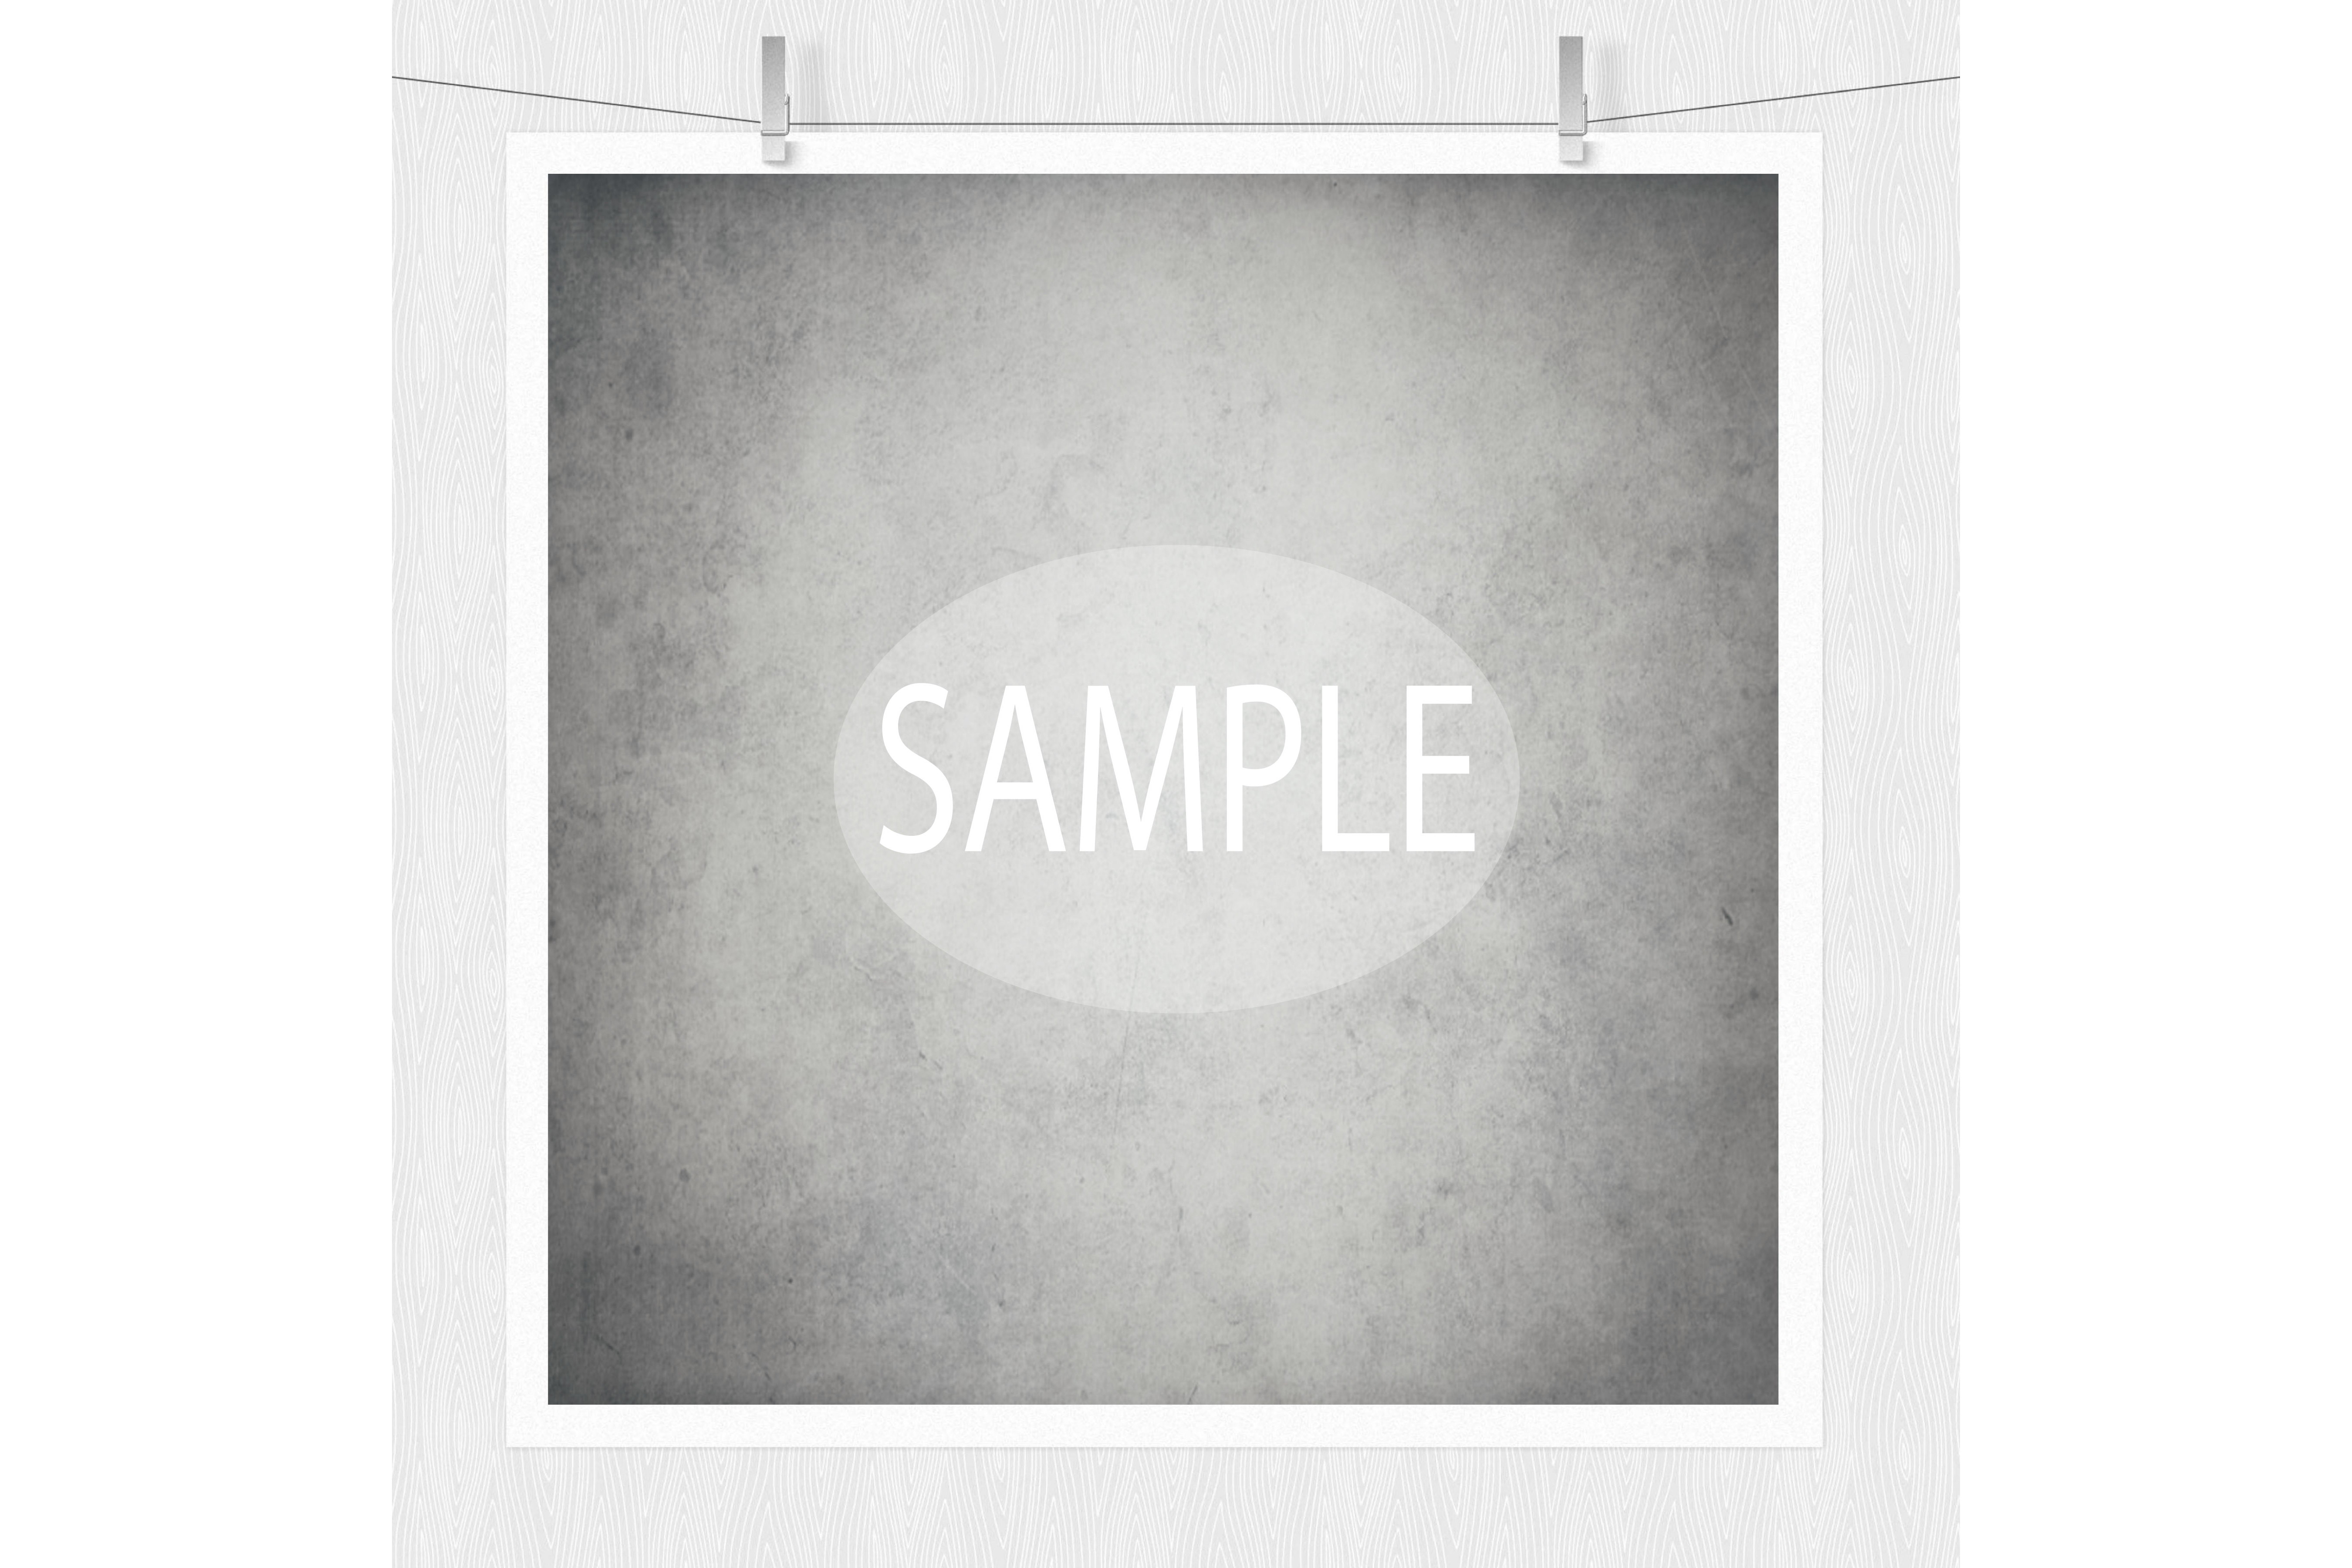 Vintage Paper Backgrounds - Textured Backgrounds in Shabby Chic Colors example image 3